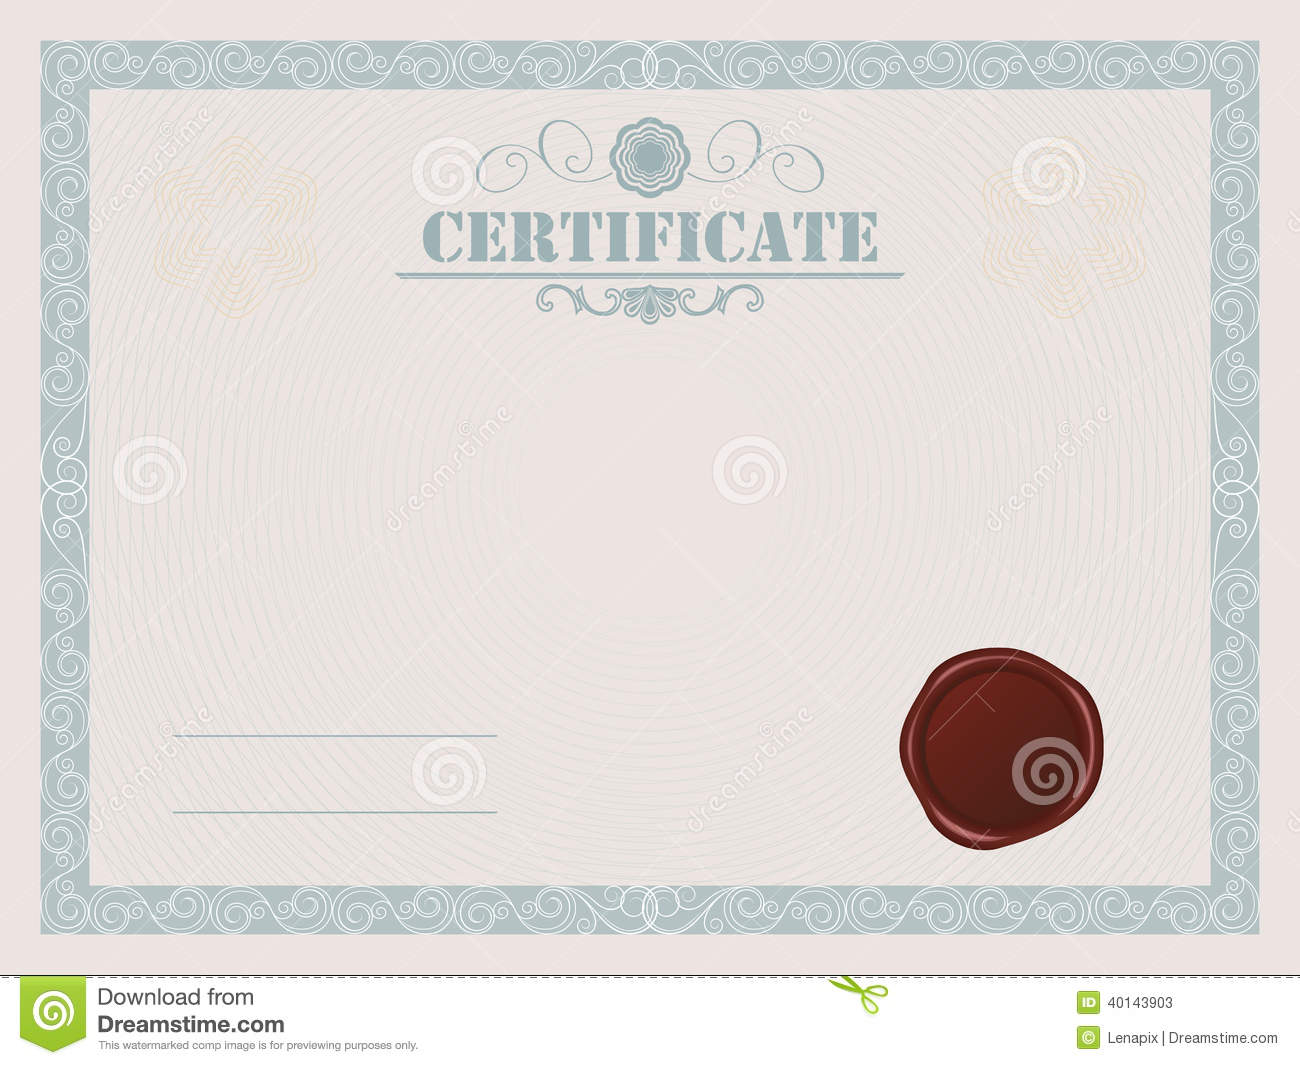 Certificate Stock Vector Illustration Of Ornament Business 40143903